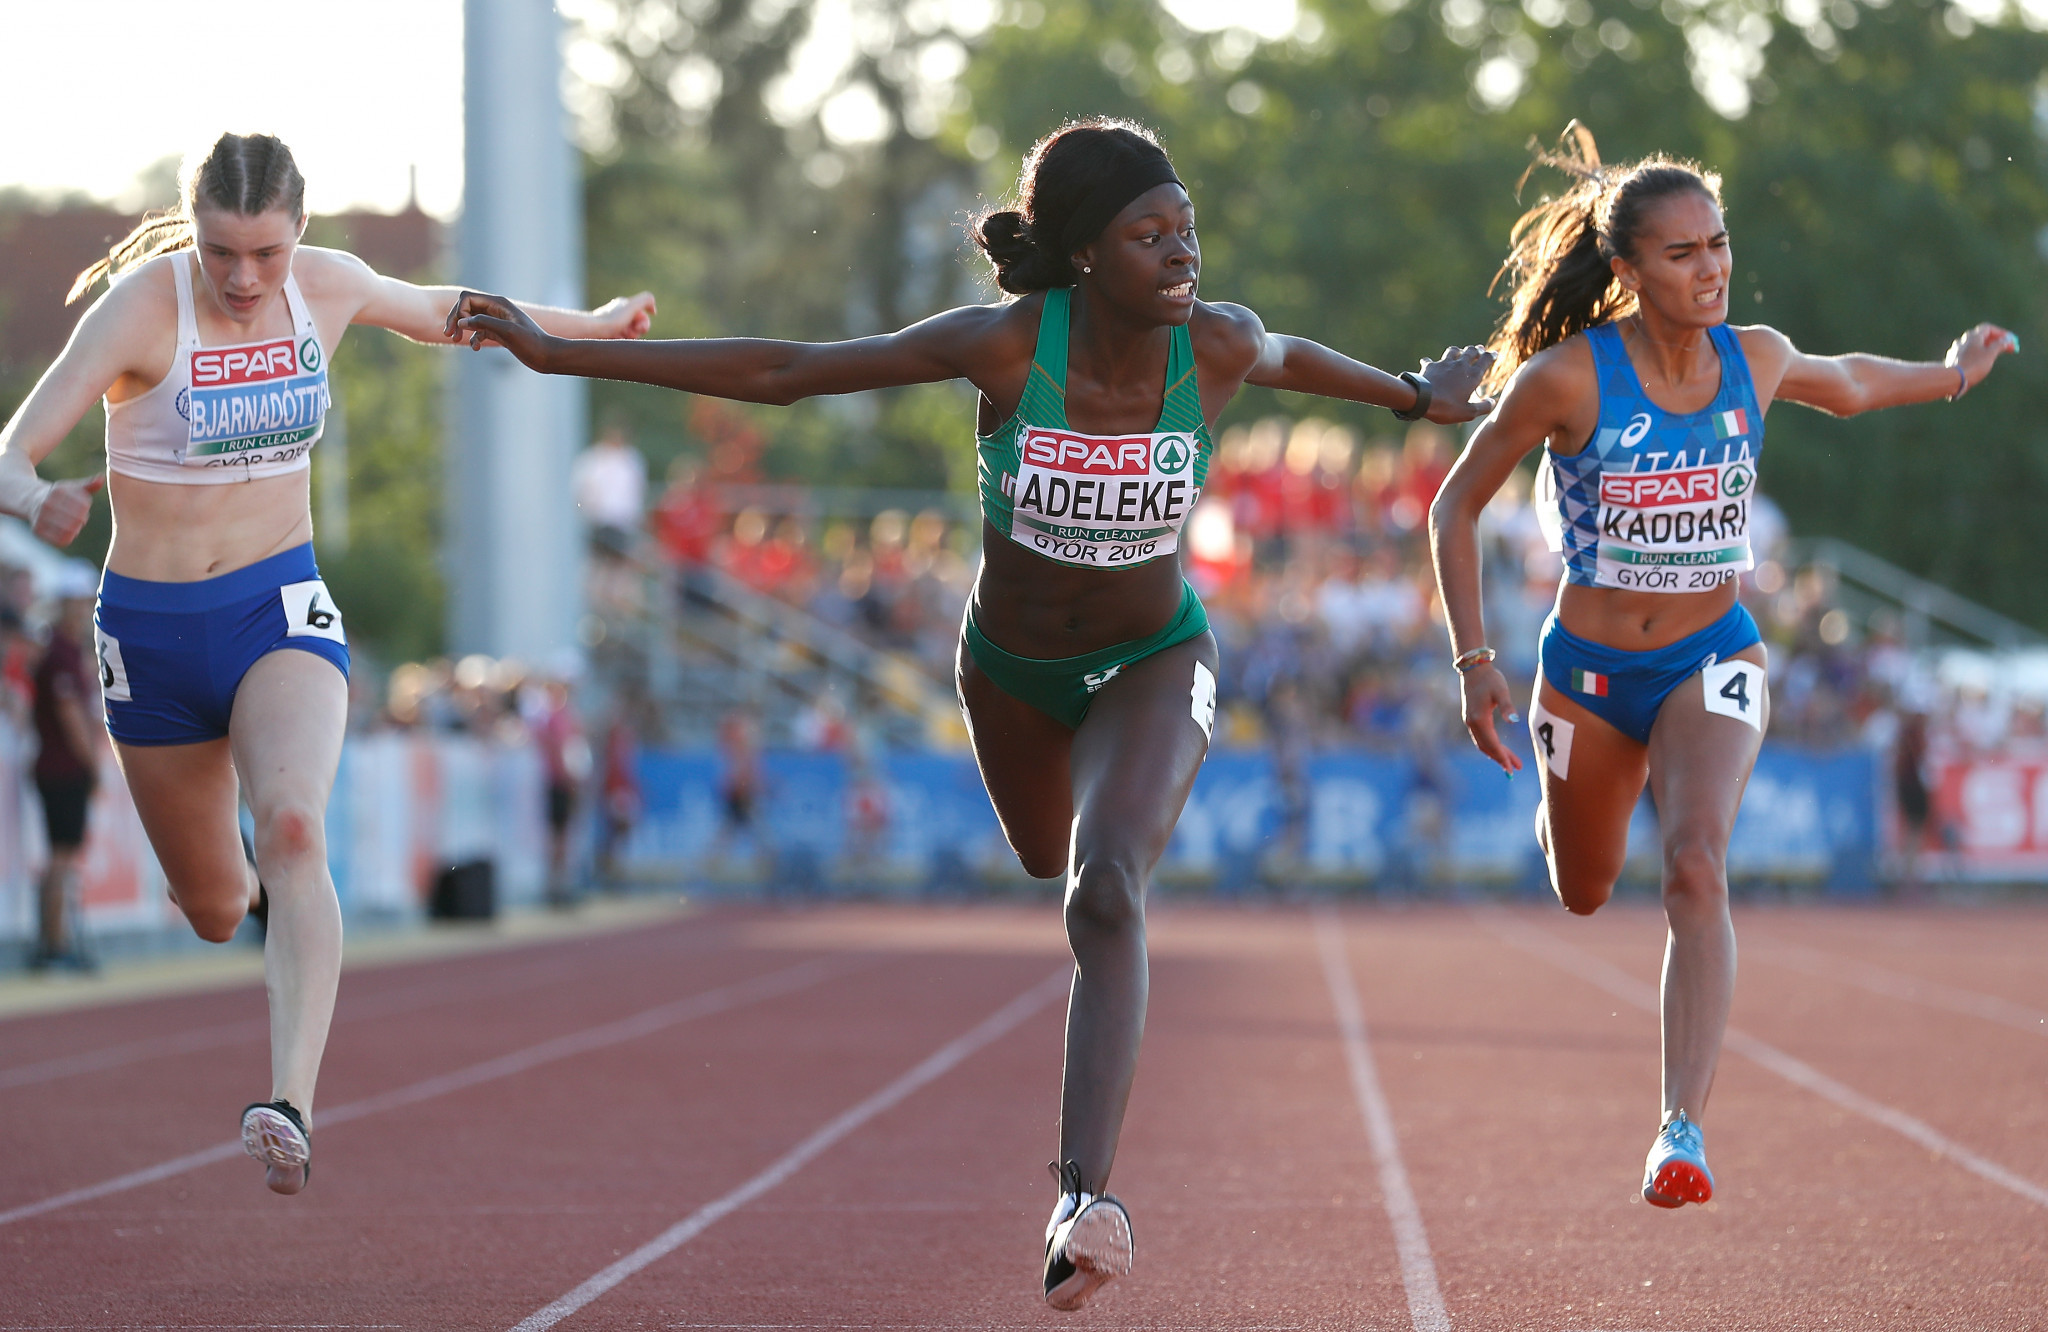 Ireland's Adeleke completes sprint double at Summer European Youth Olympic Festival in Baku